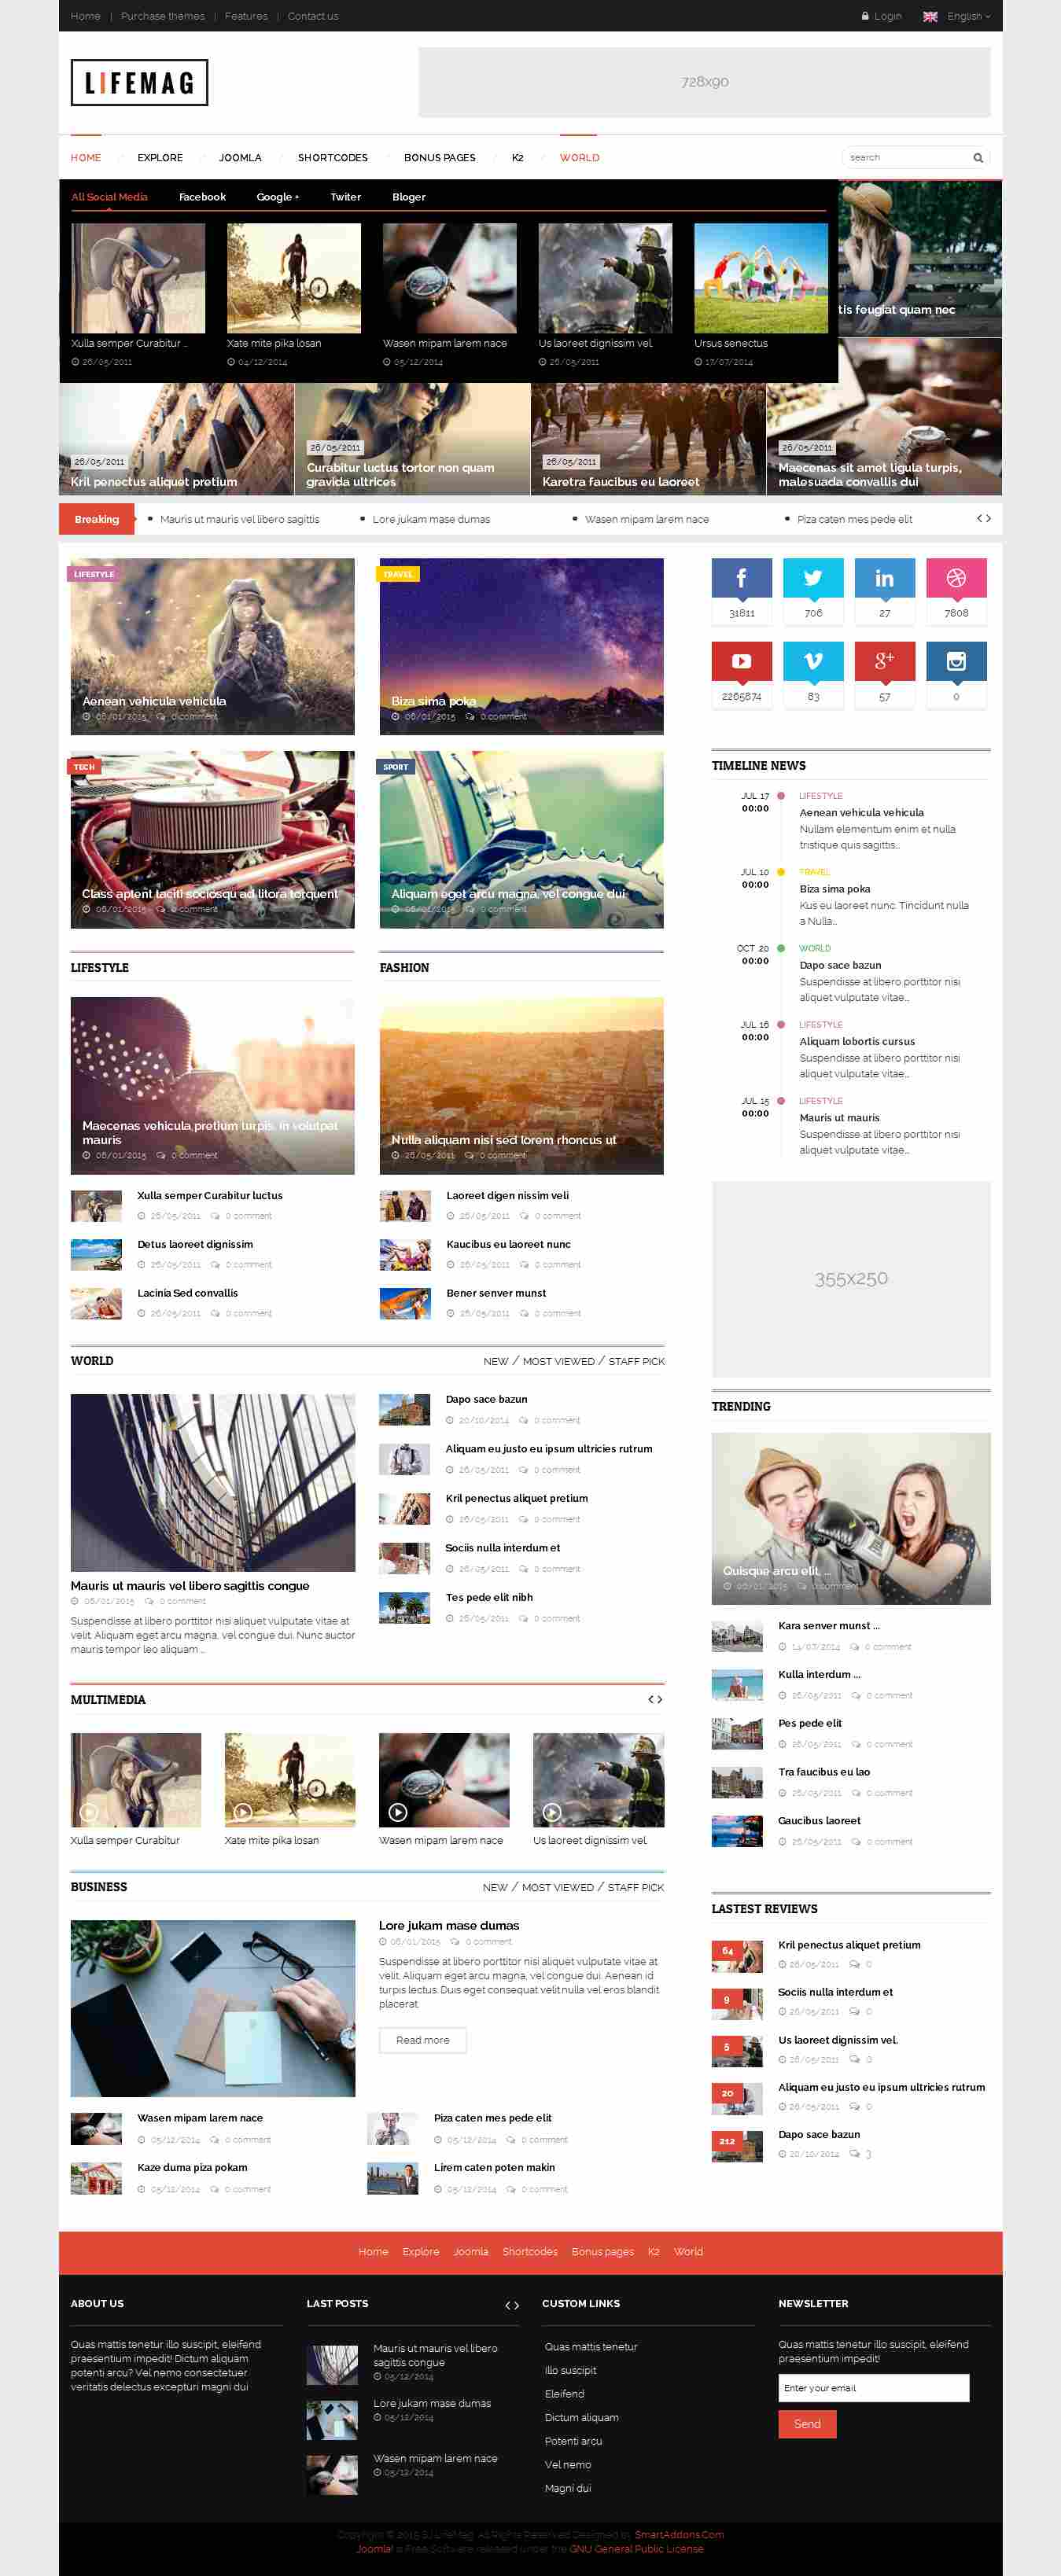 SJ LifeMag - Responsive Joomla News Magazine Template - 08_mega-menu-compressed.jpg